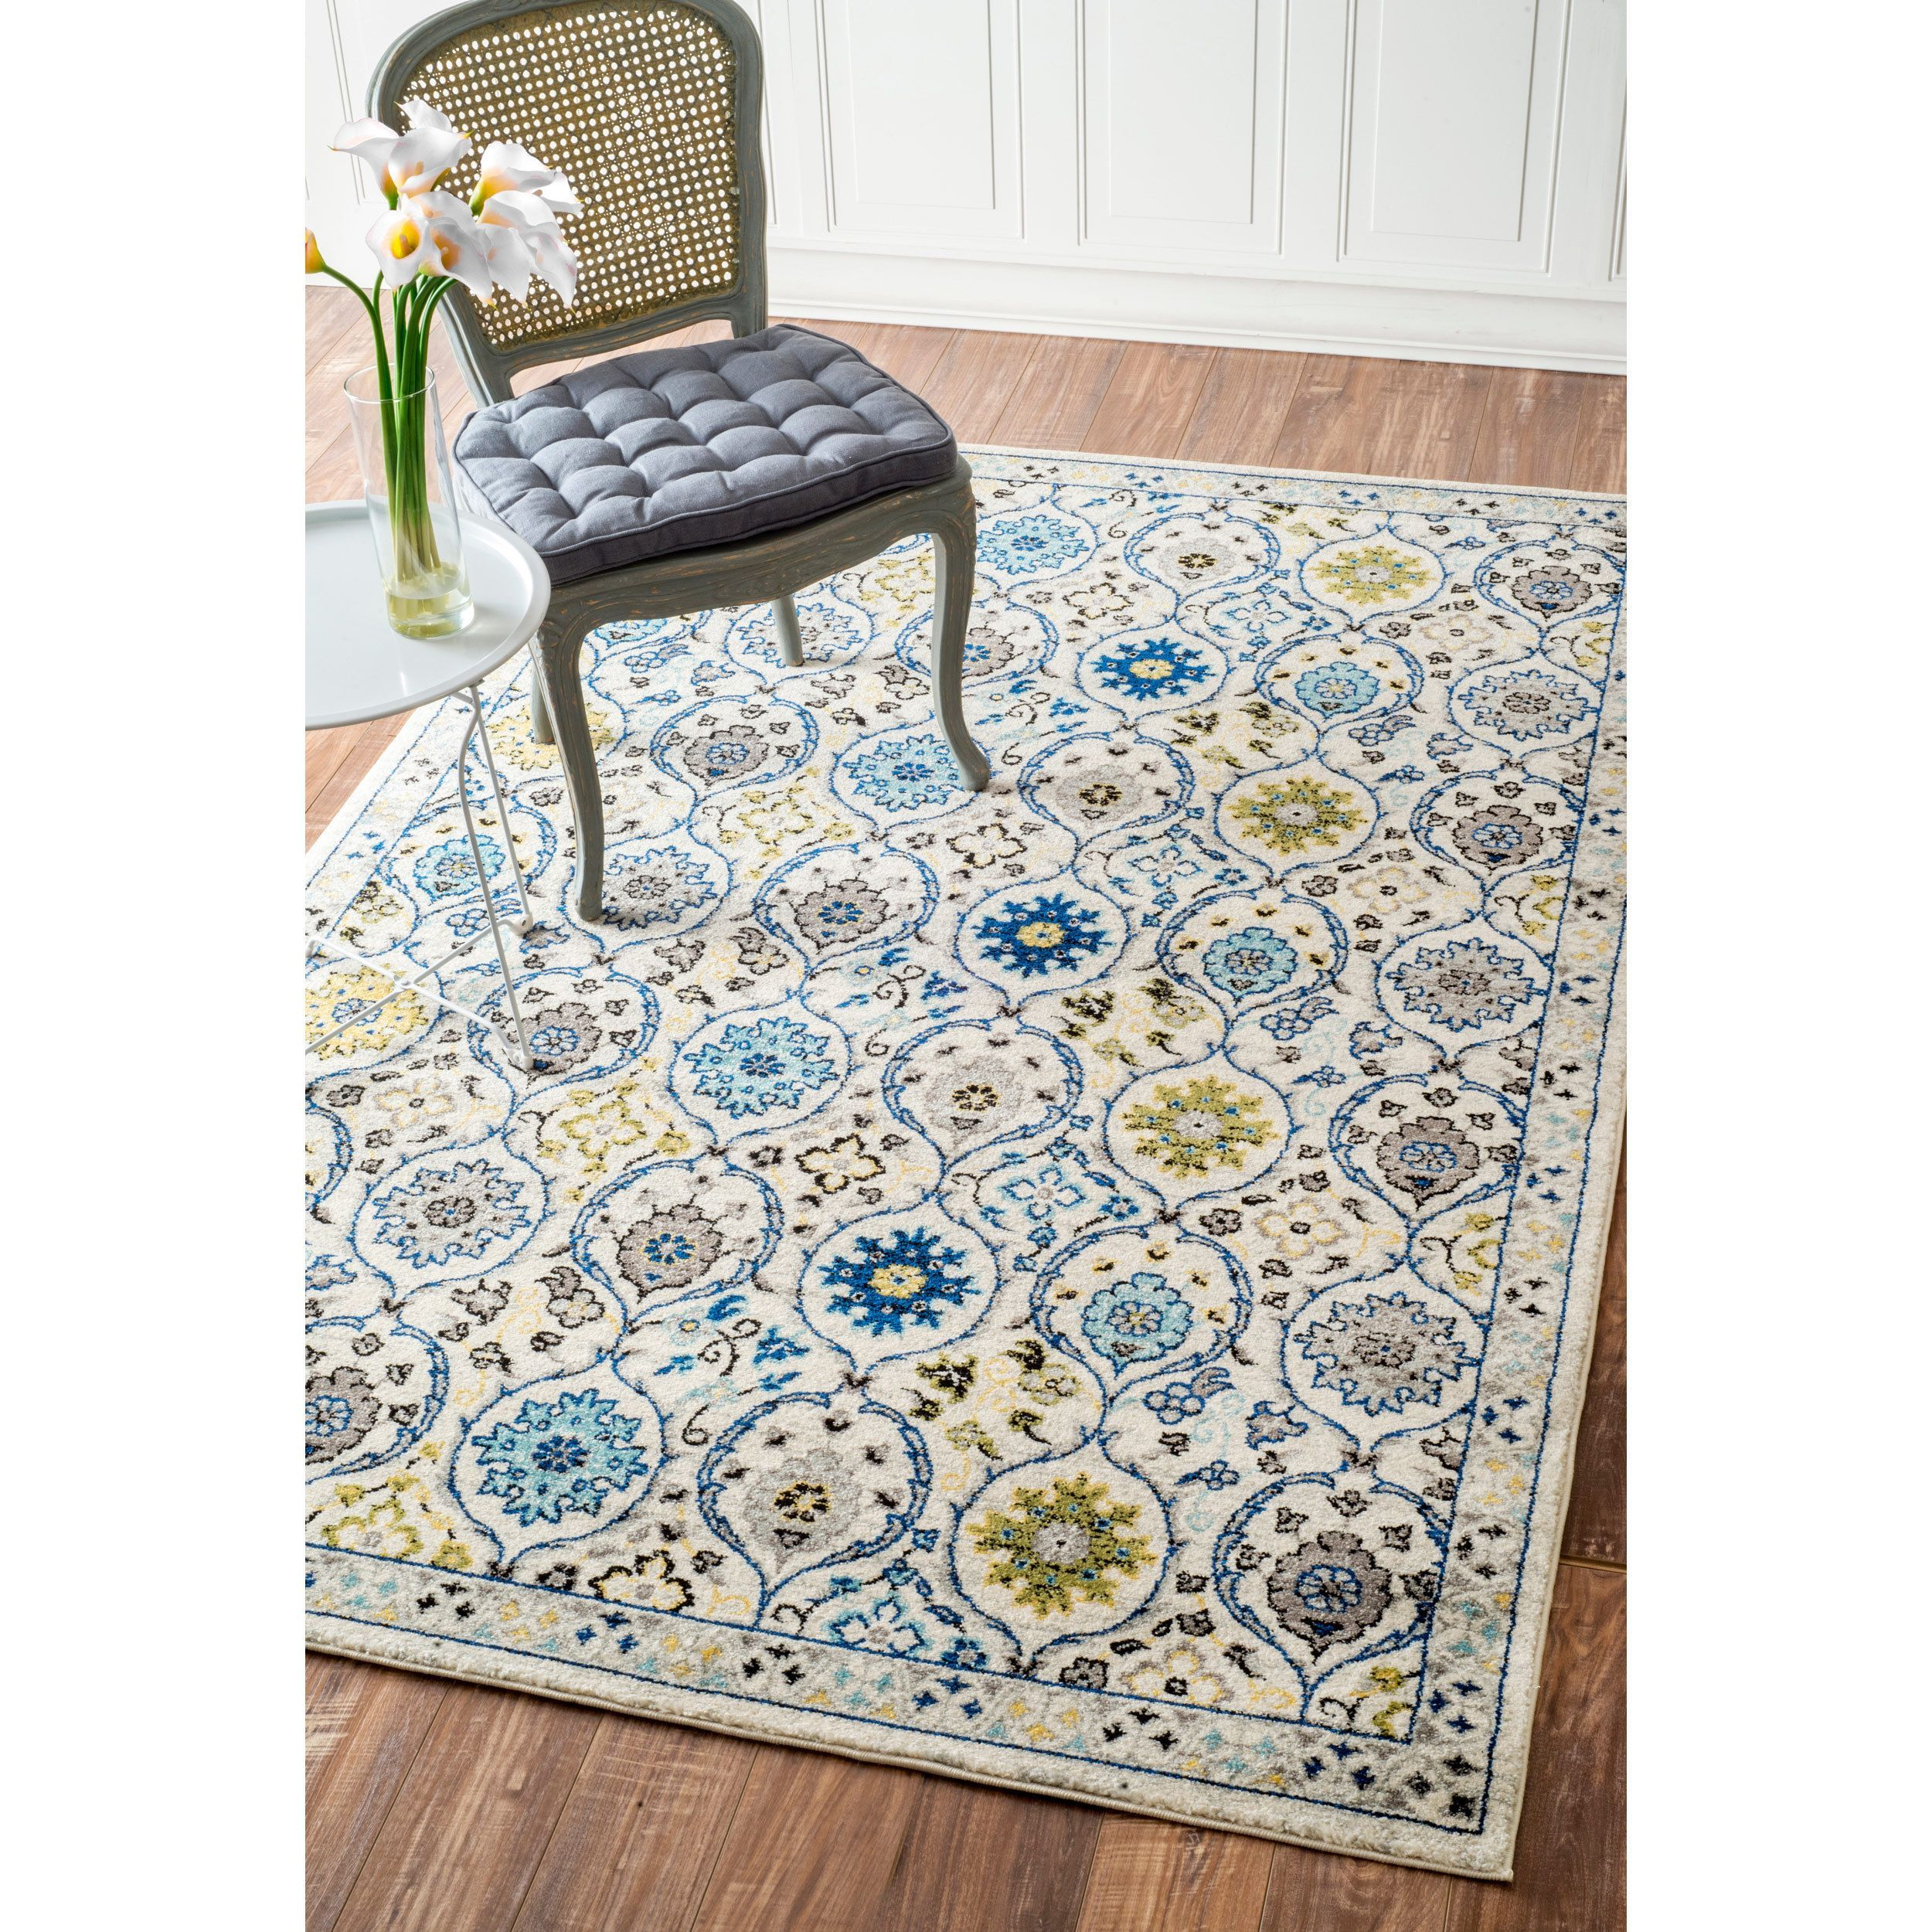 Safavieh Vintage Turquoise Viscose Rug X Ping Great Deals On Rugs